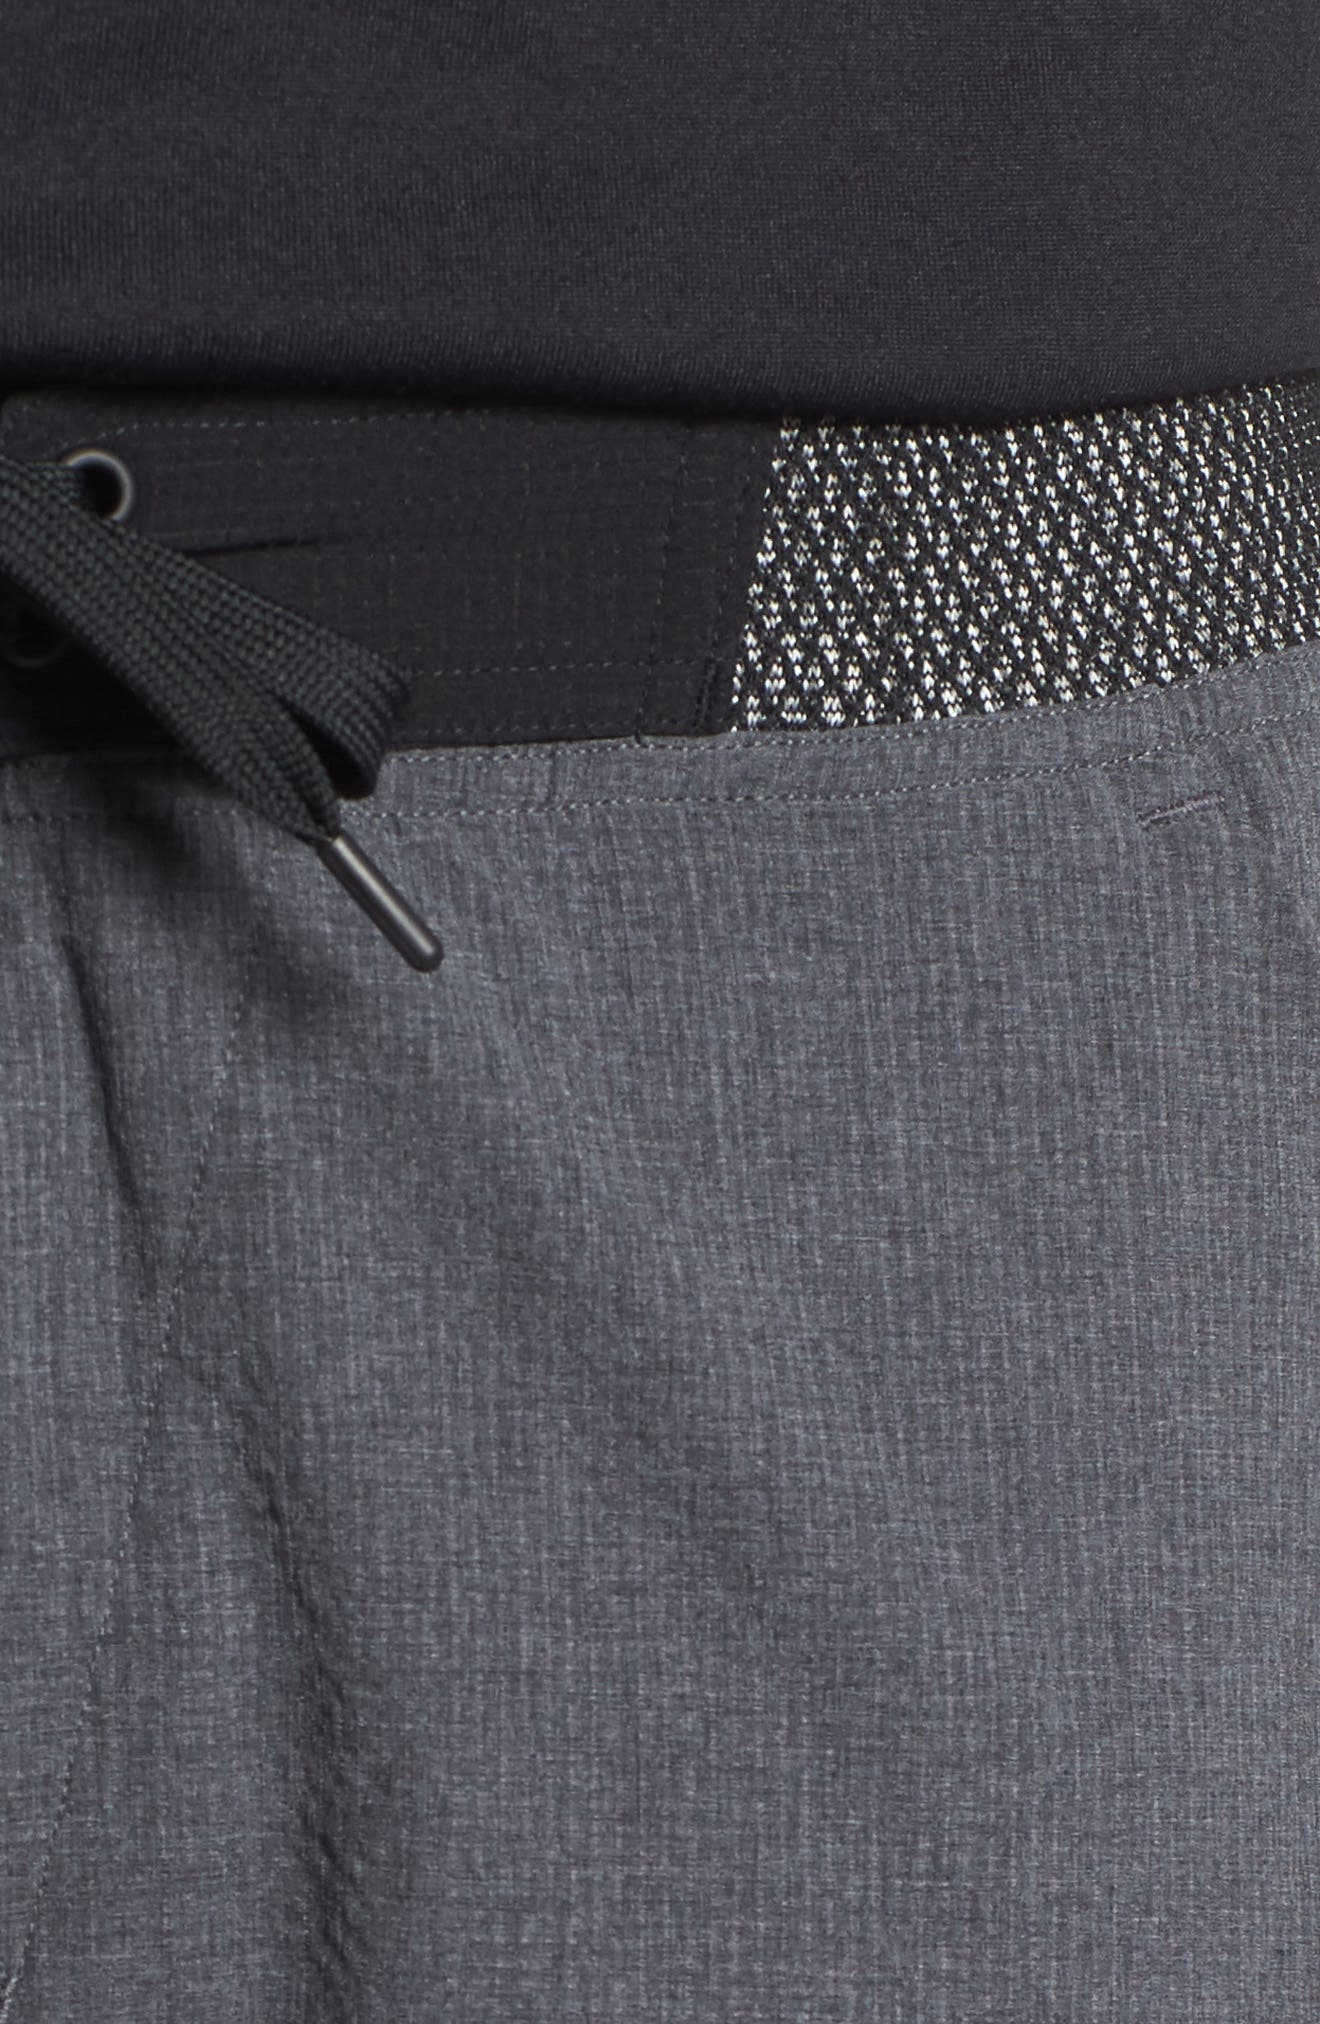 Epic Knit Shorts,                             Alternate thumbnail 4, color,                             Dark Grey Heather